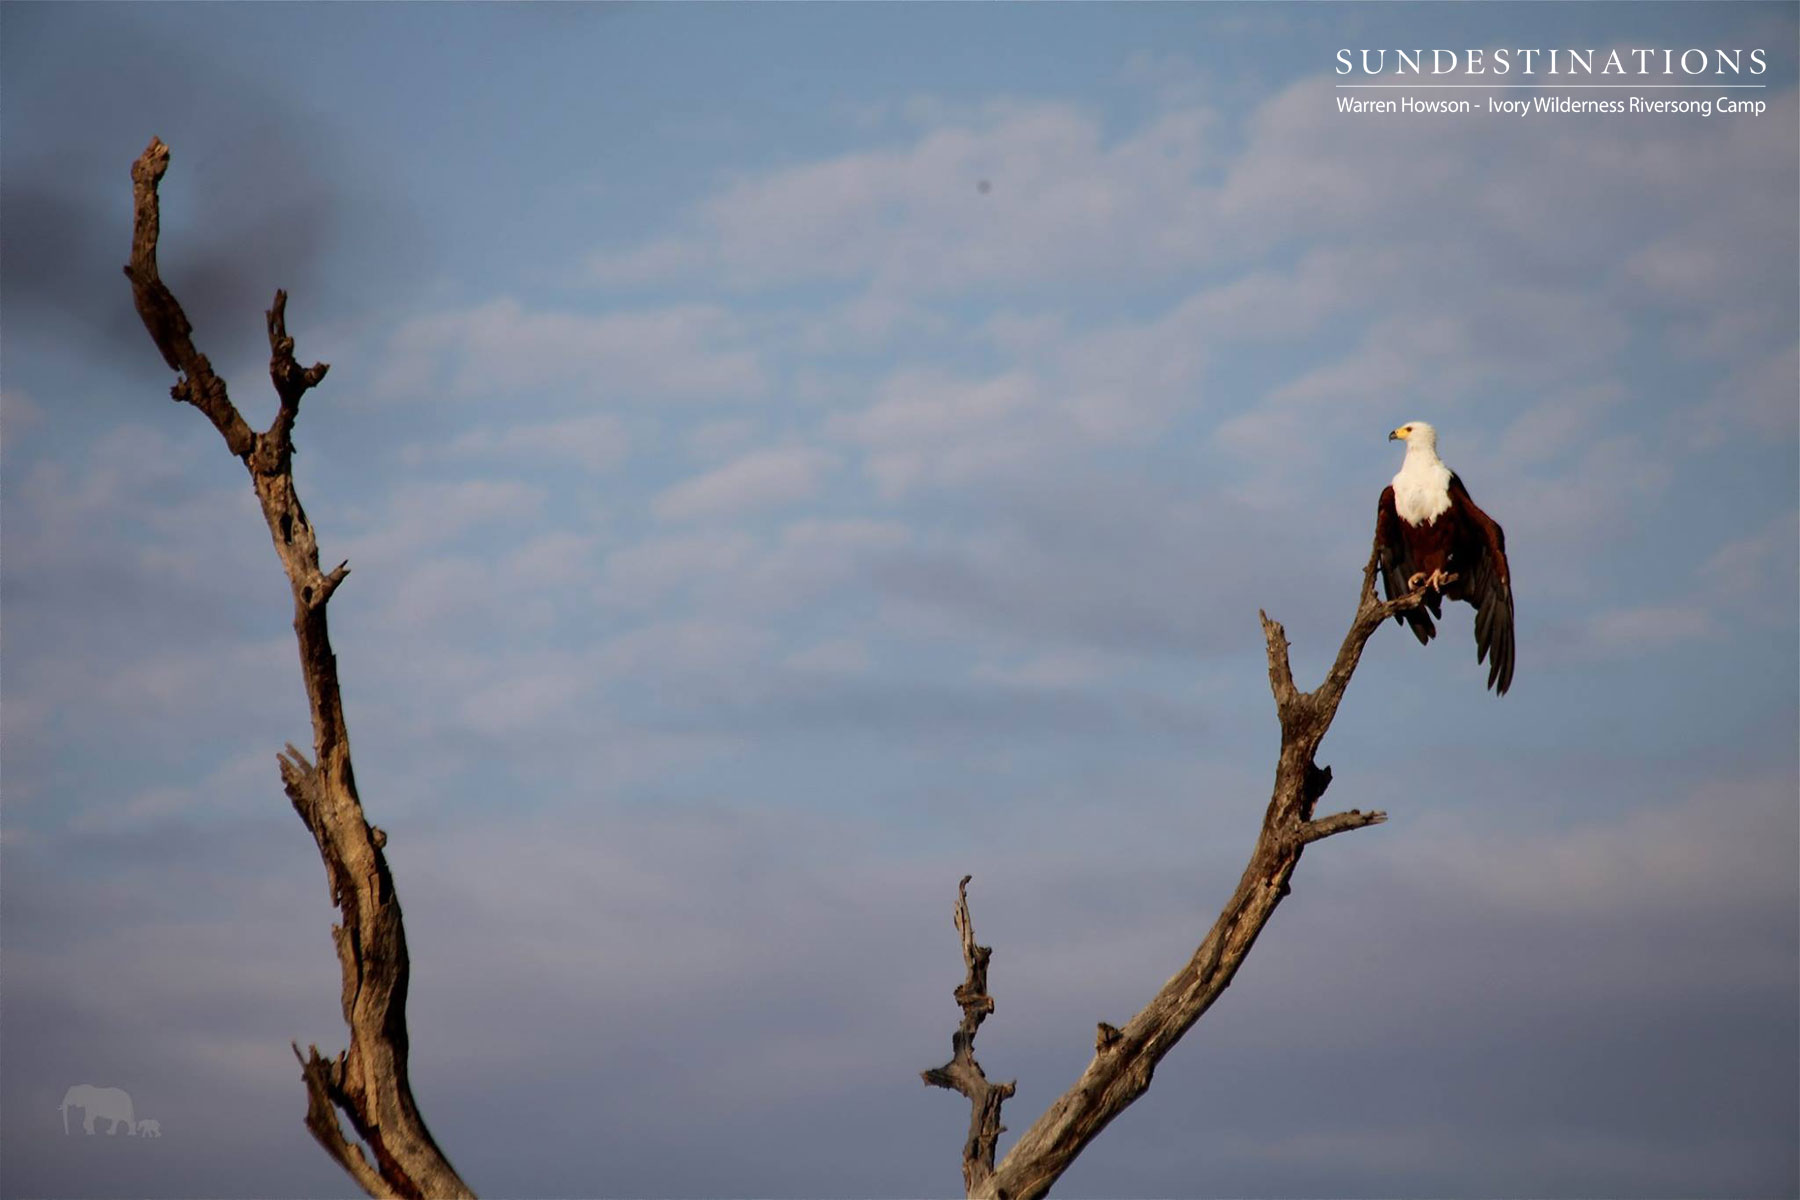 Ivory Wilderness African Fish Eagle